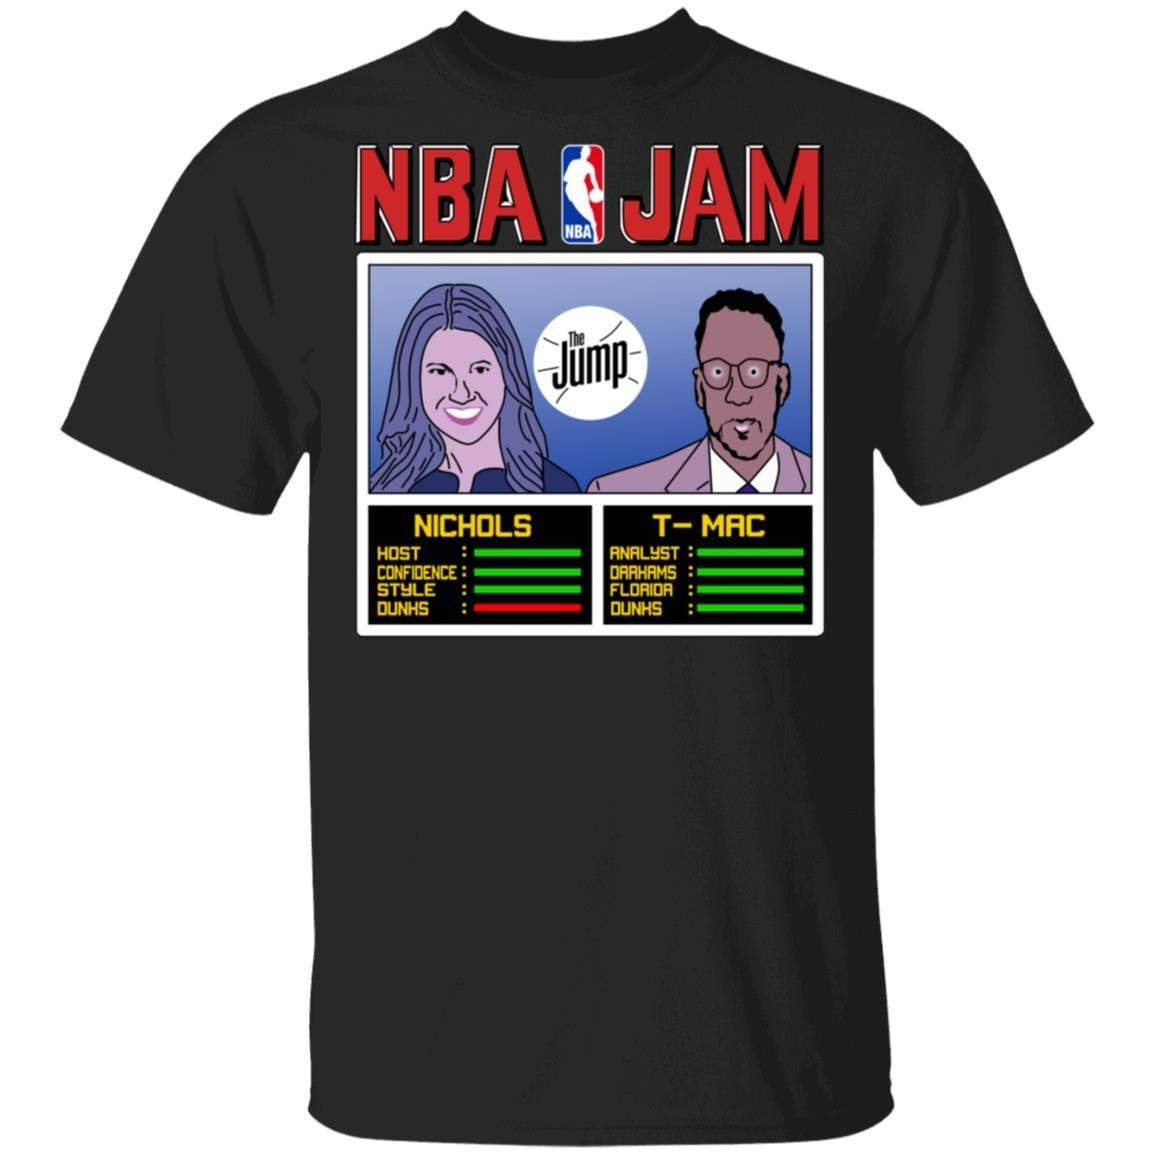 NBA Jam The Jump Nichols TMac T-Shirts, Hoodies 1049-9953-93031545-48144 - Tee Ript